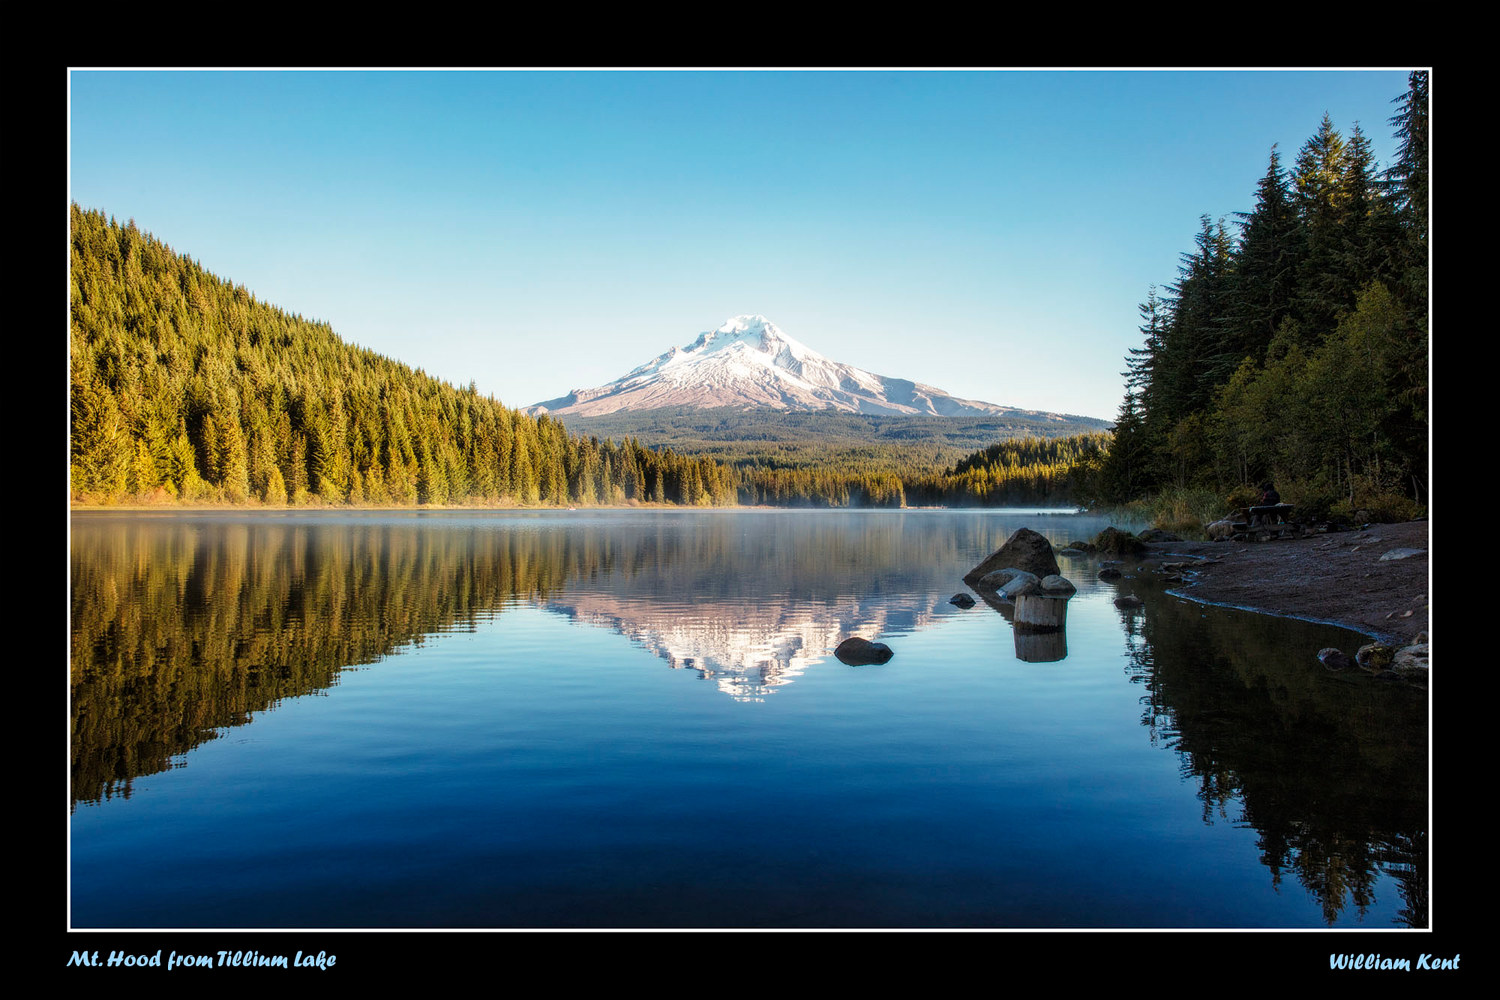 Mt Hood from Tillium Lake by William Kent